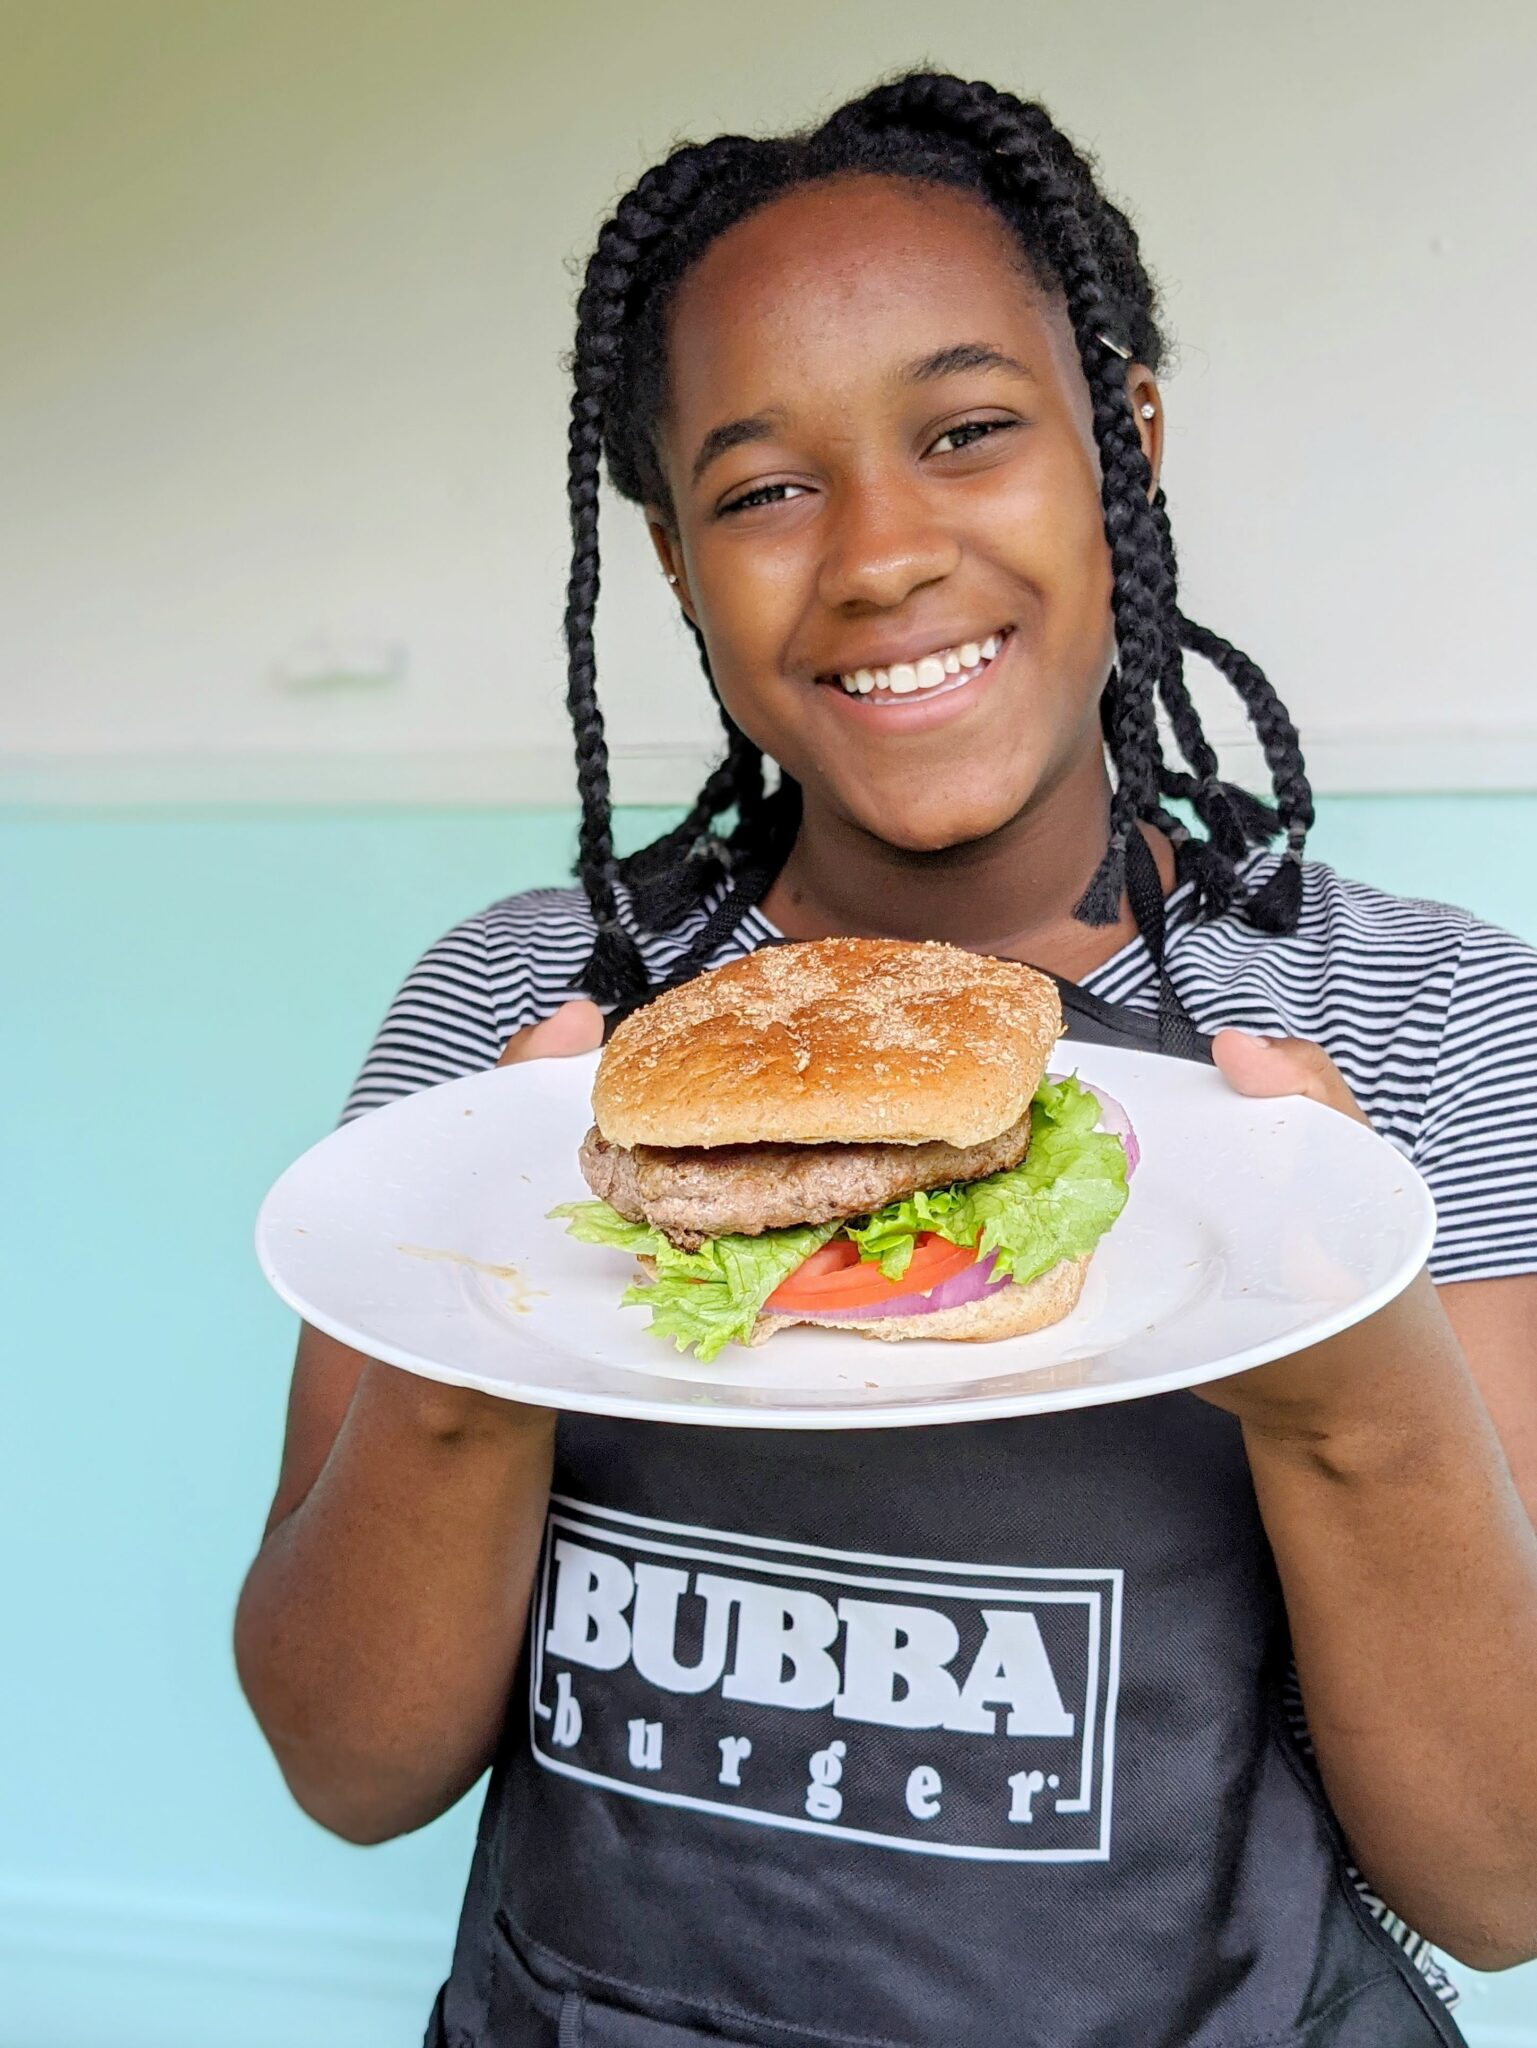 My Favorite Camping Meal Hacks with BUBBA Burger All Things with Purpose Sarah Lemp 11